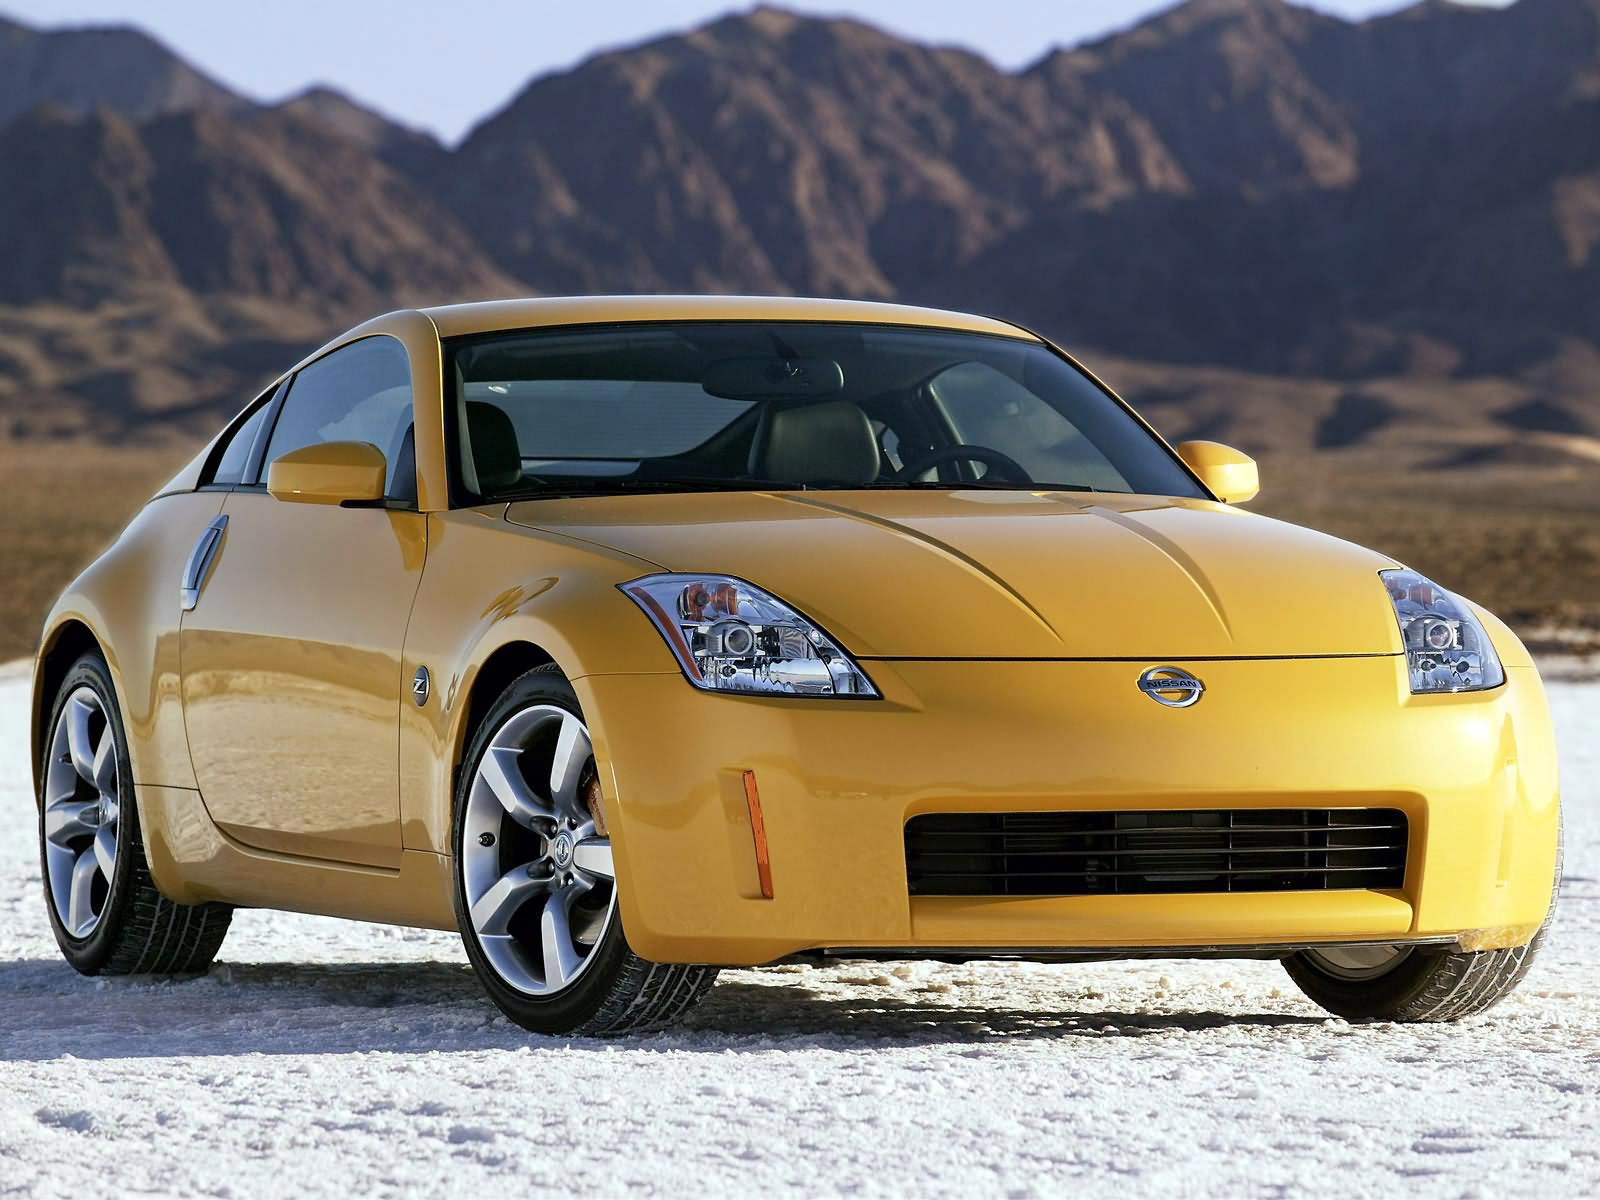 New automotive news and images luxury car nissan 350z two seat sports car that was